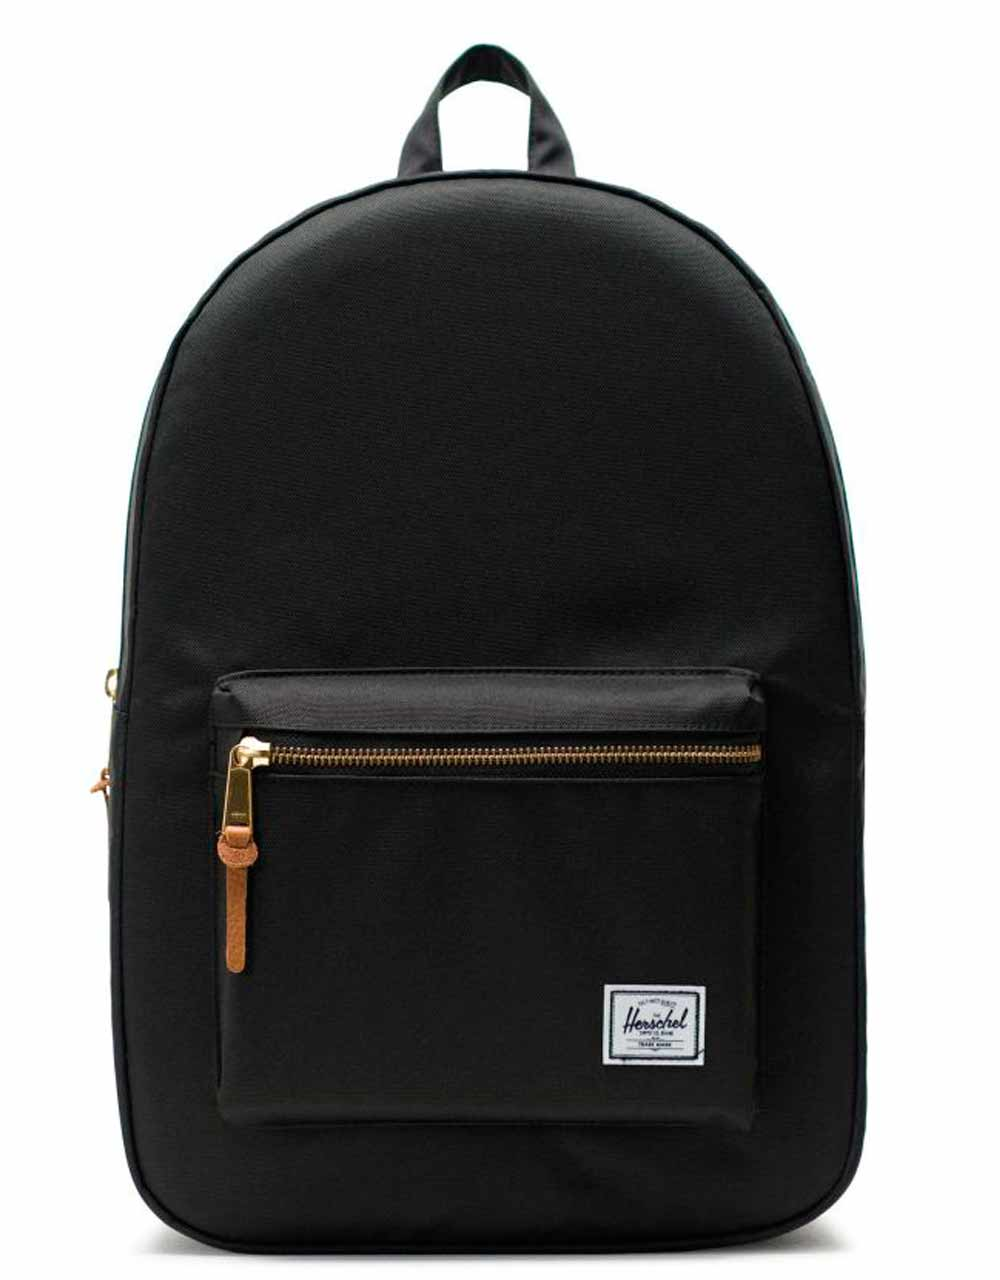 Рюкзак Herschel Settlement Black, 23l